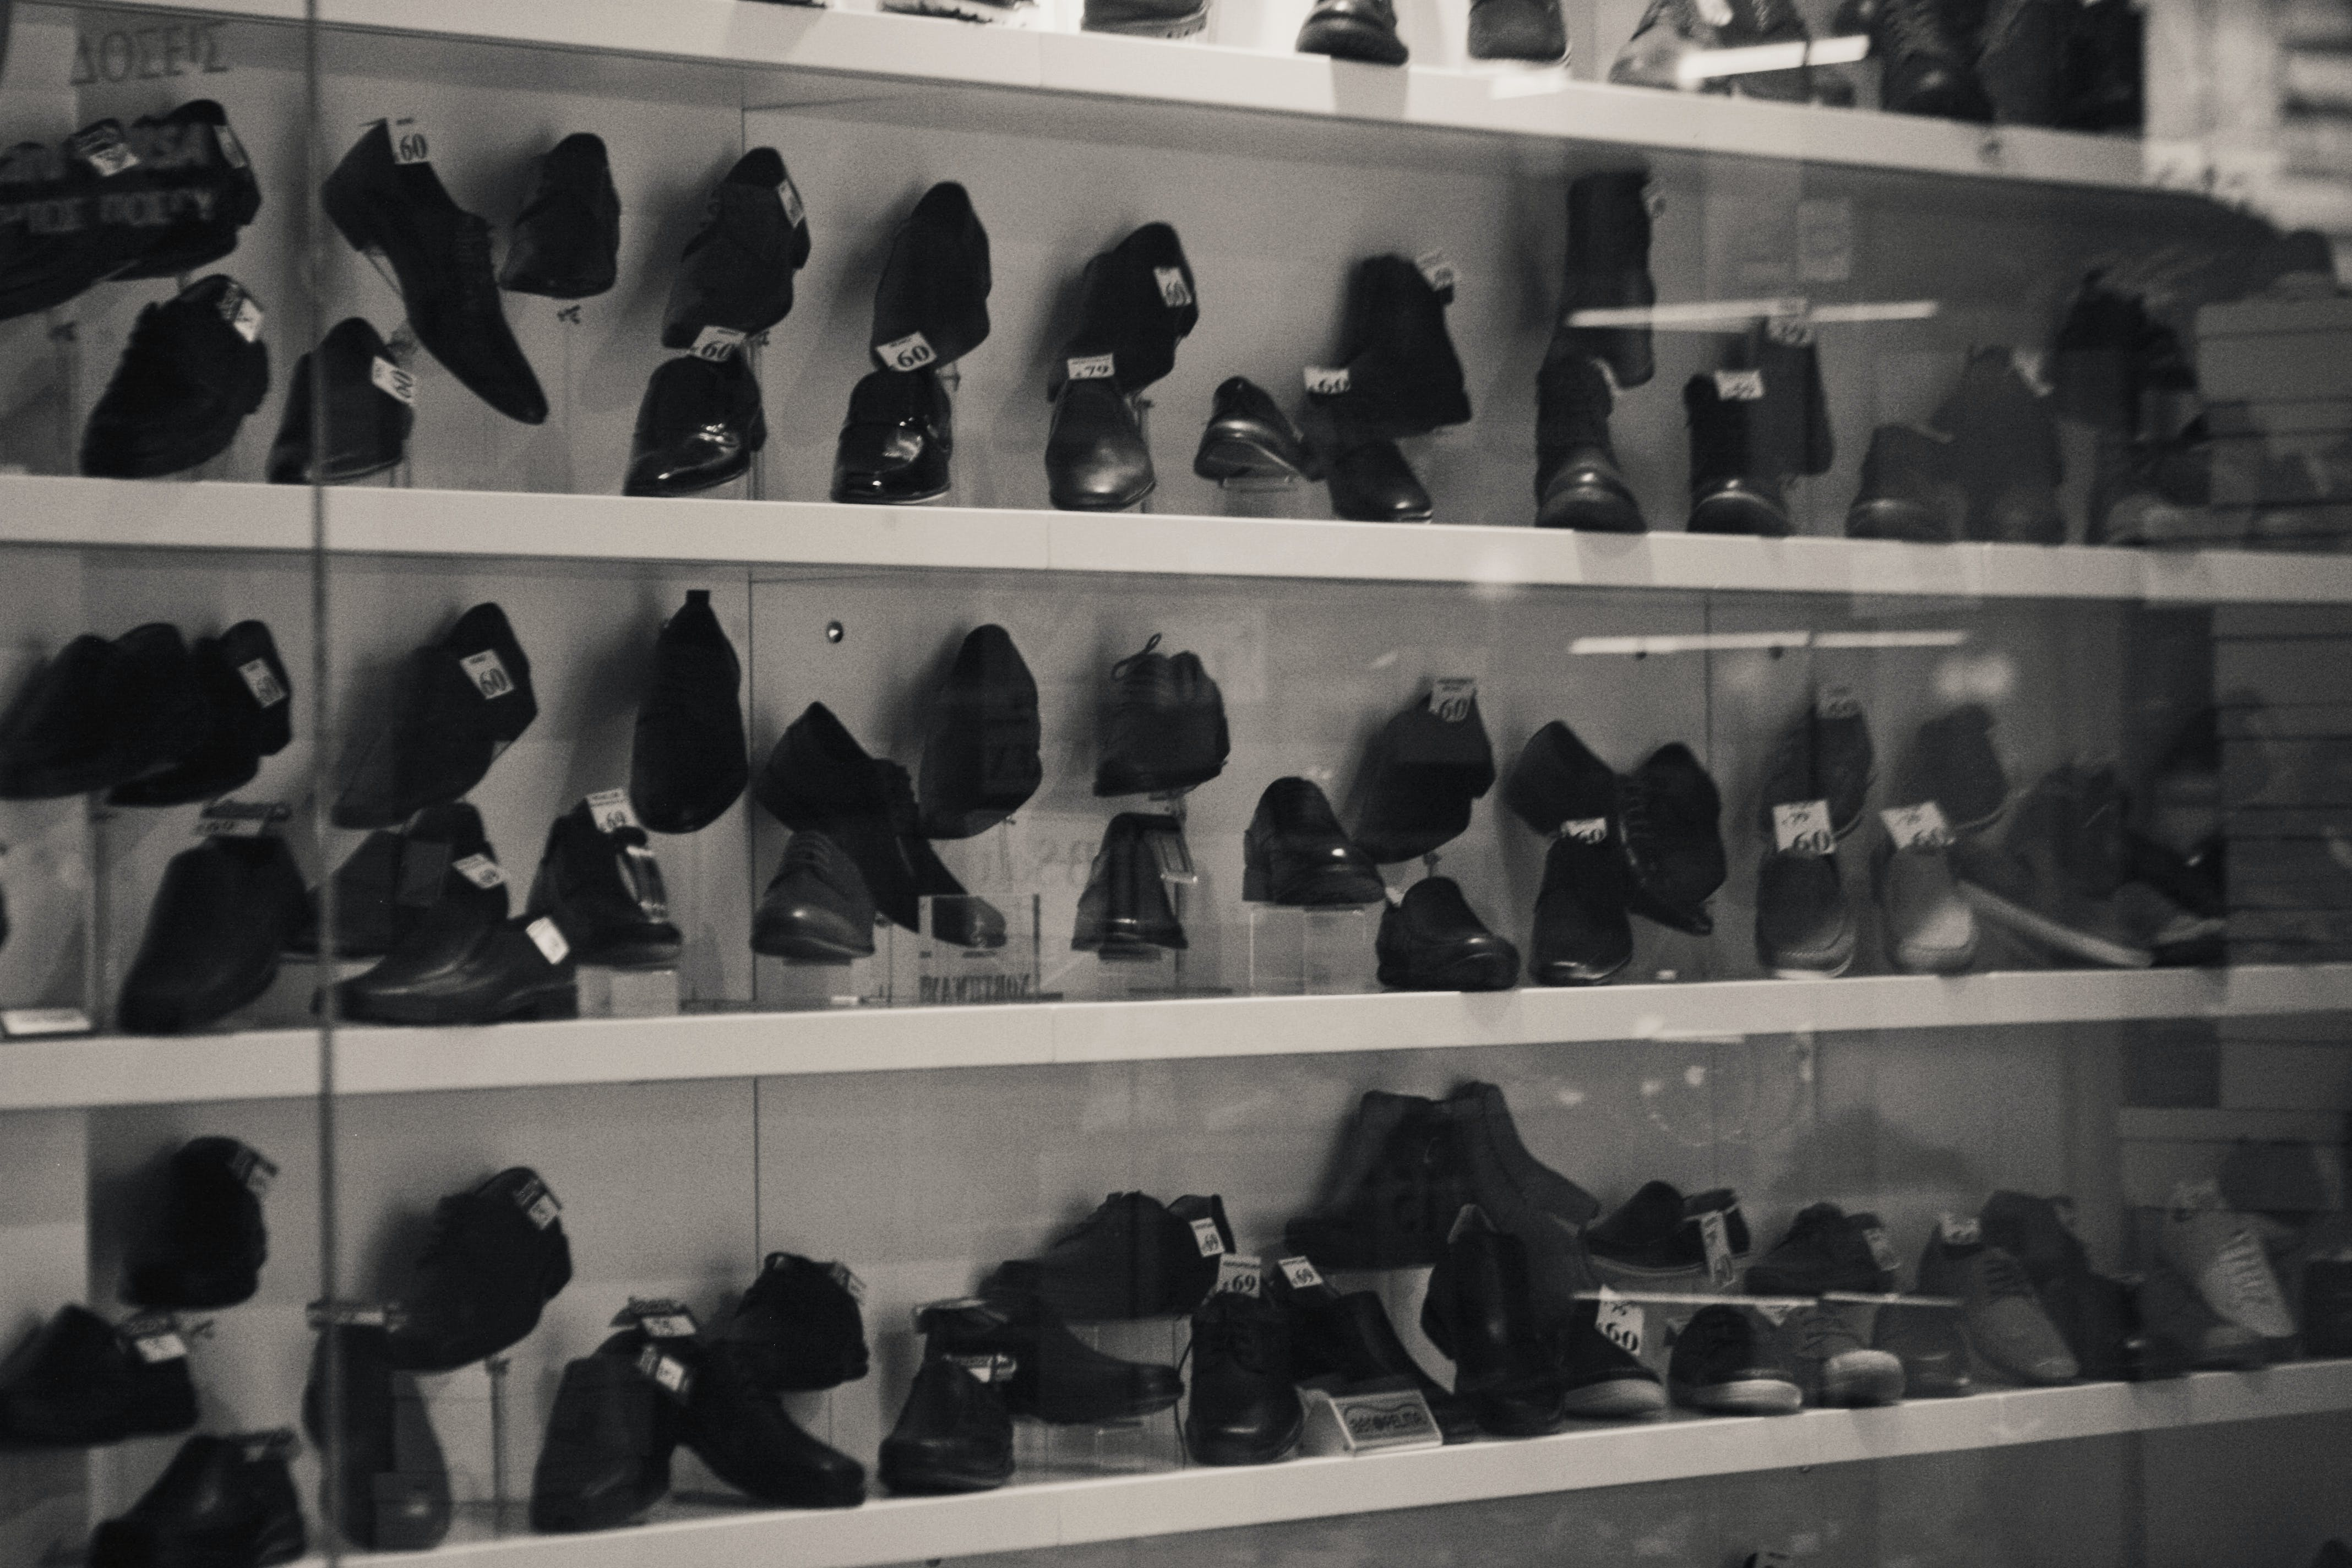 Grayscale Photography of Shoes on Racks